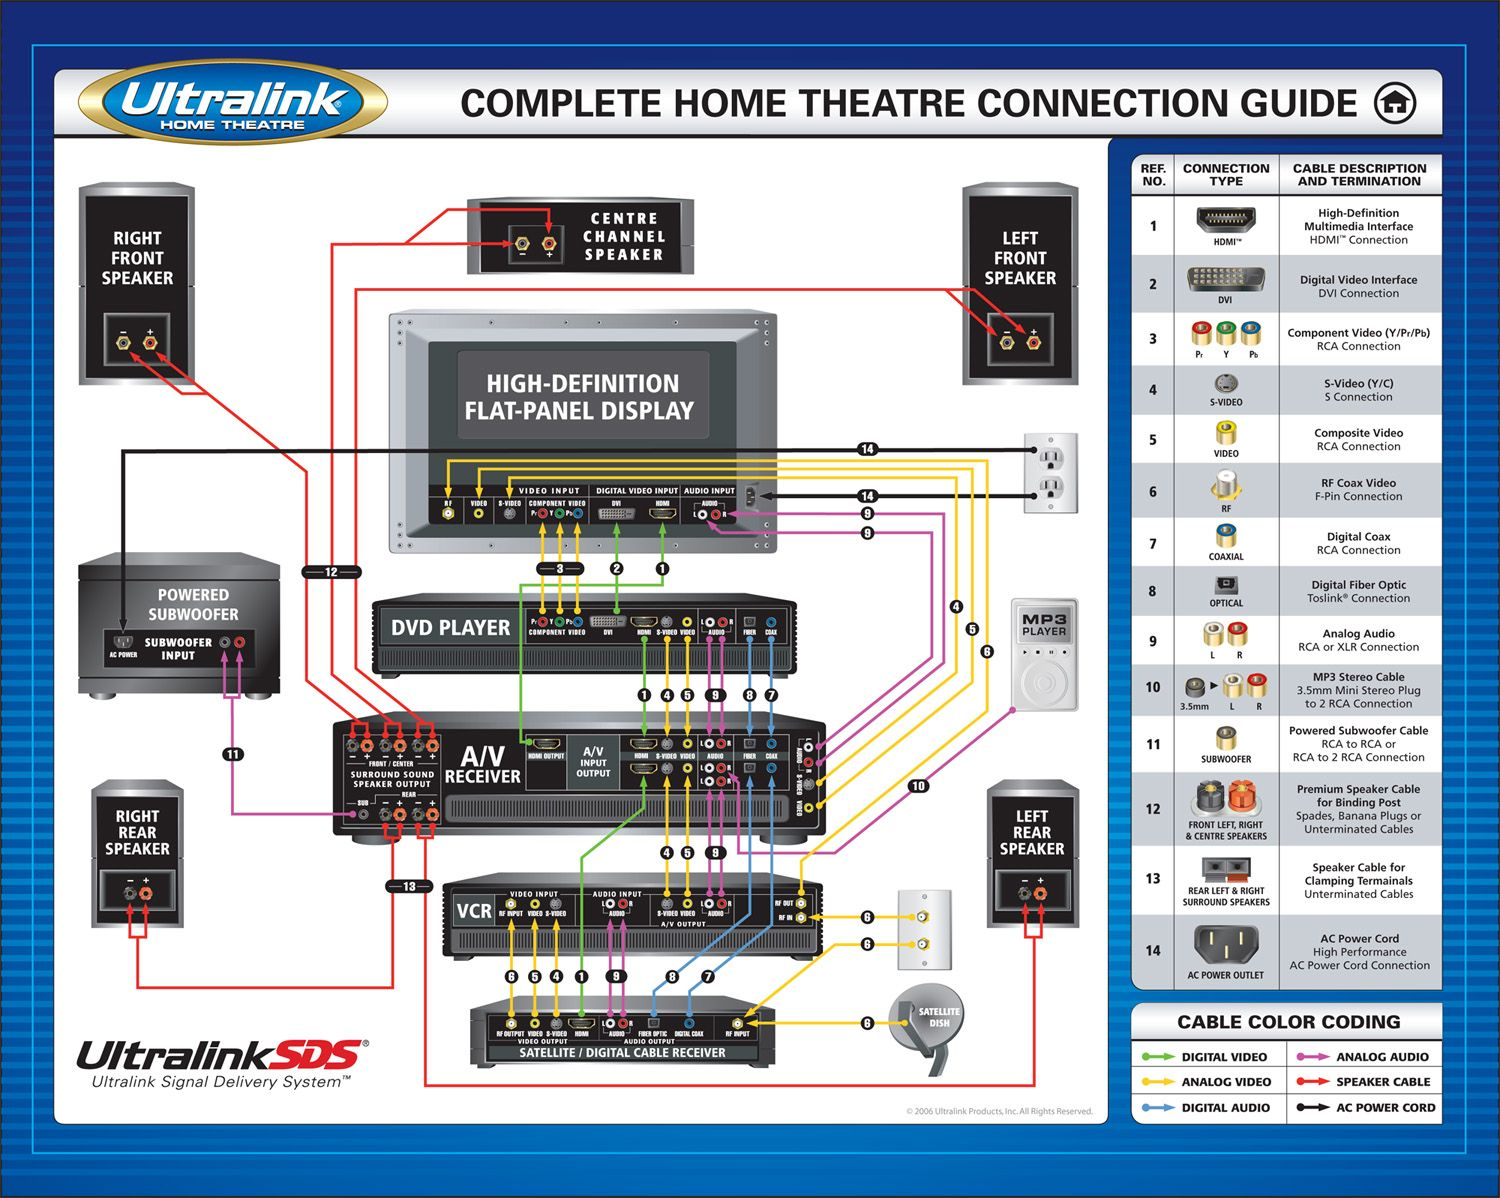 home theatre connection guide, audio connections, video connections 5.1 speaker setup home theatre connection guide, audio connections, video connections, setup